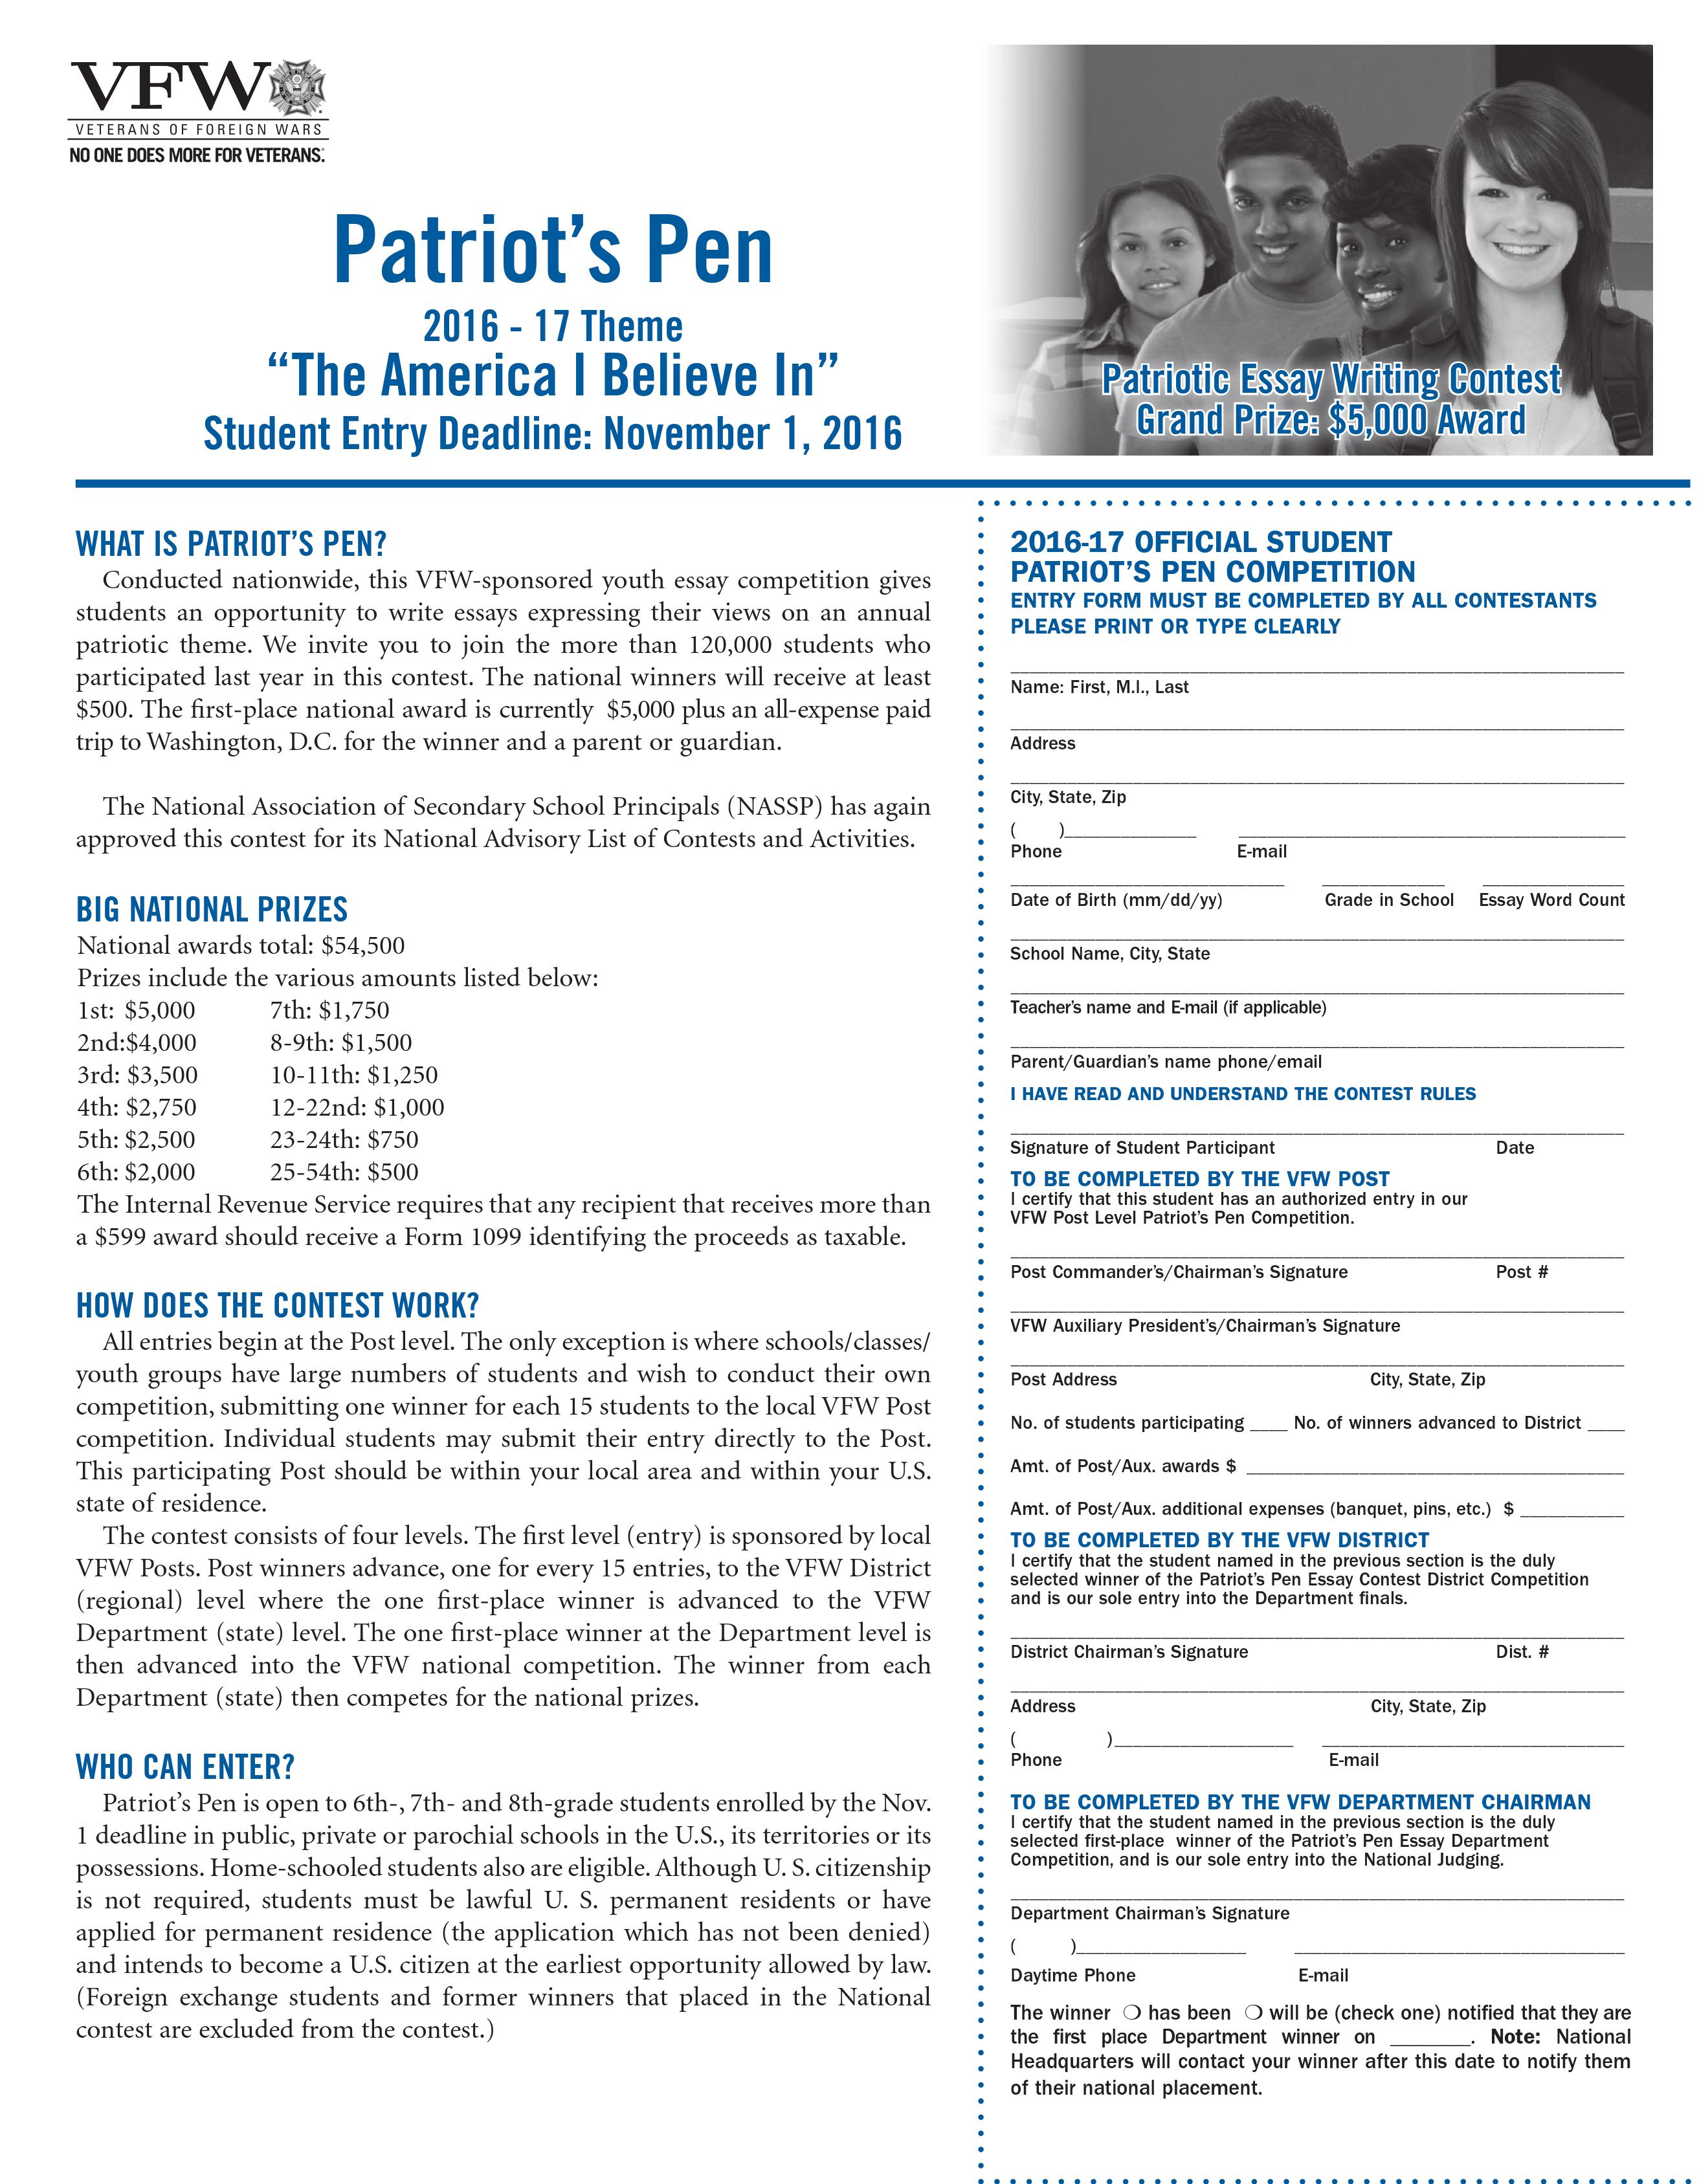 005 Patriots Pen Essay Contest Example Remarkable Patriot's 2018 Winners Vfw Entry Form Full